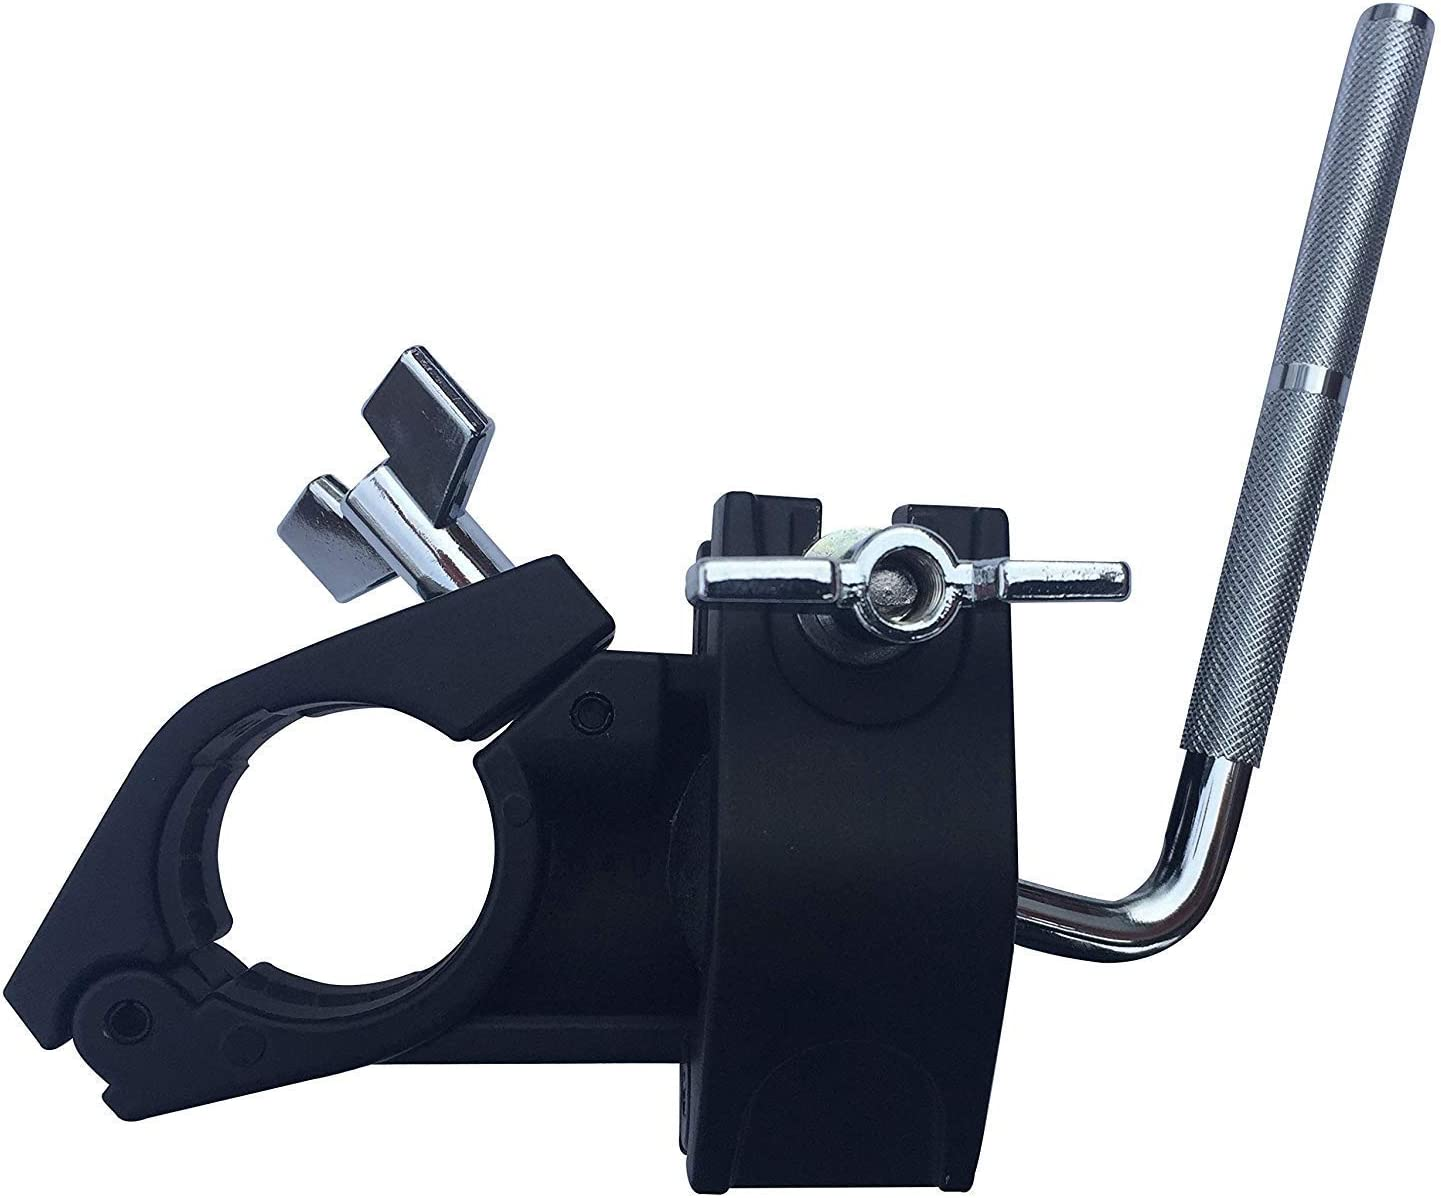 Drum 5% OFF Rack Clamp- ROSS Mount Sale Special Price Percussion Cowbell